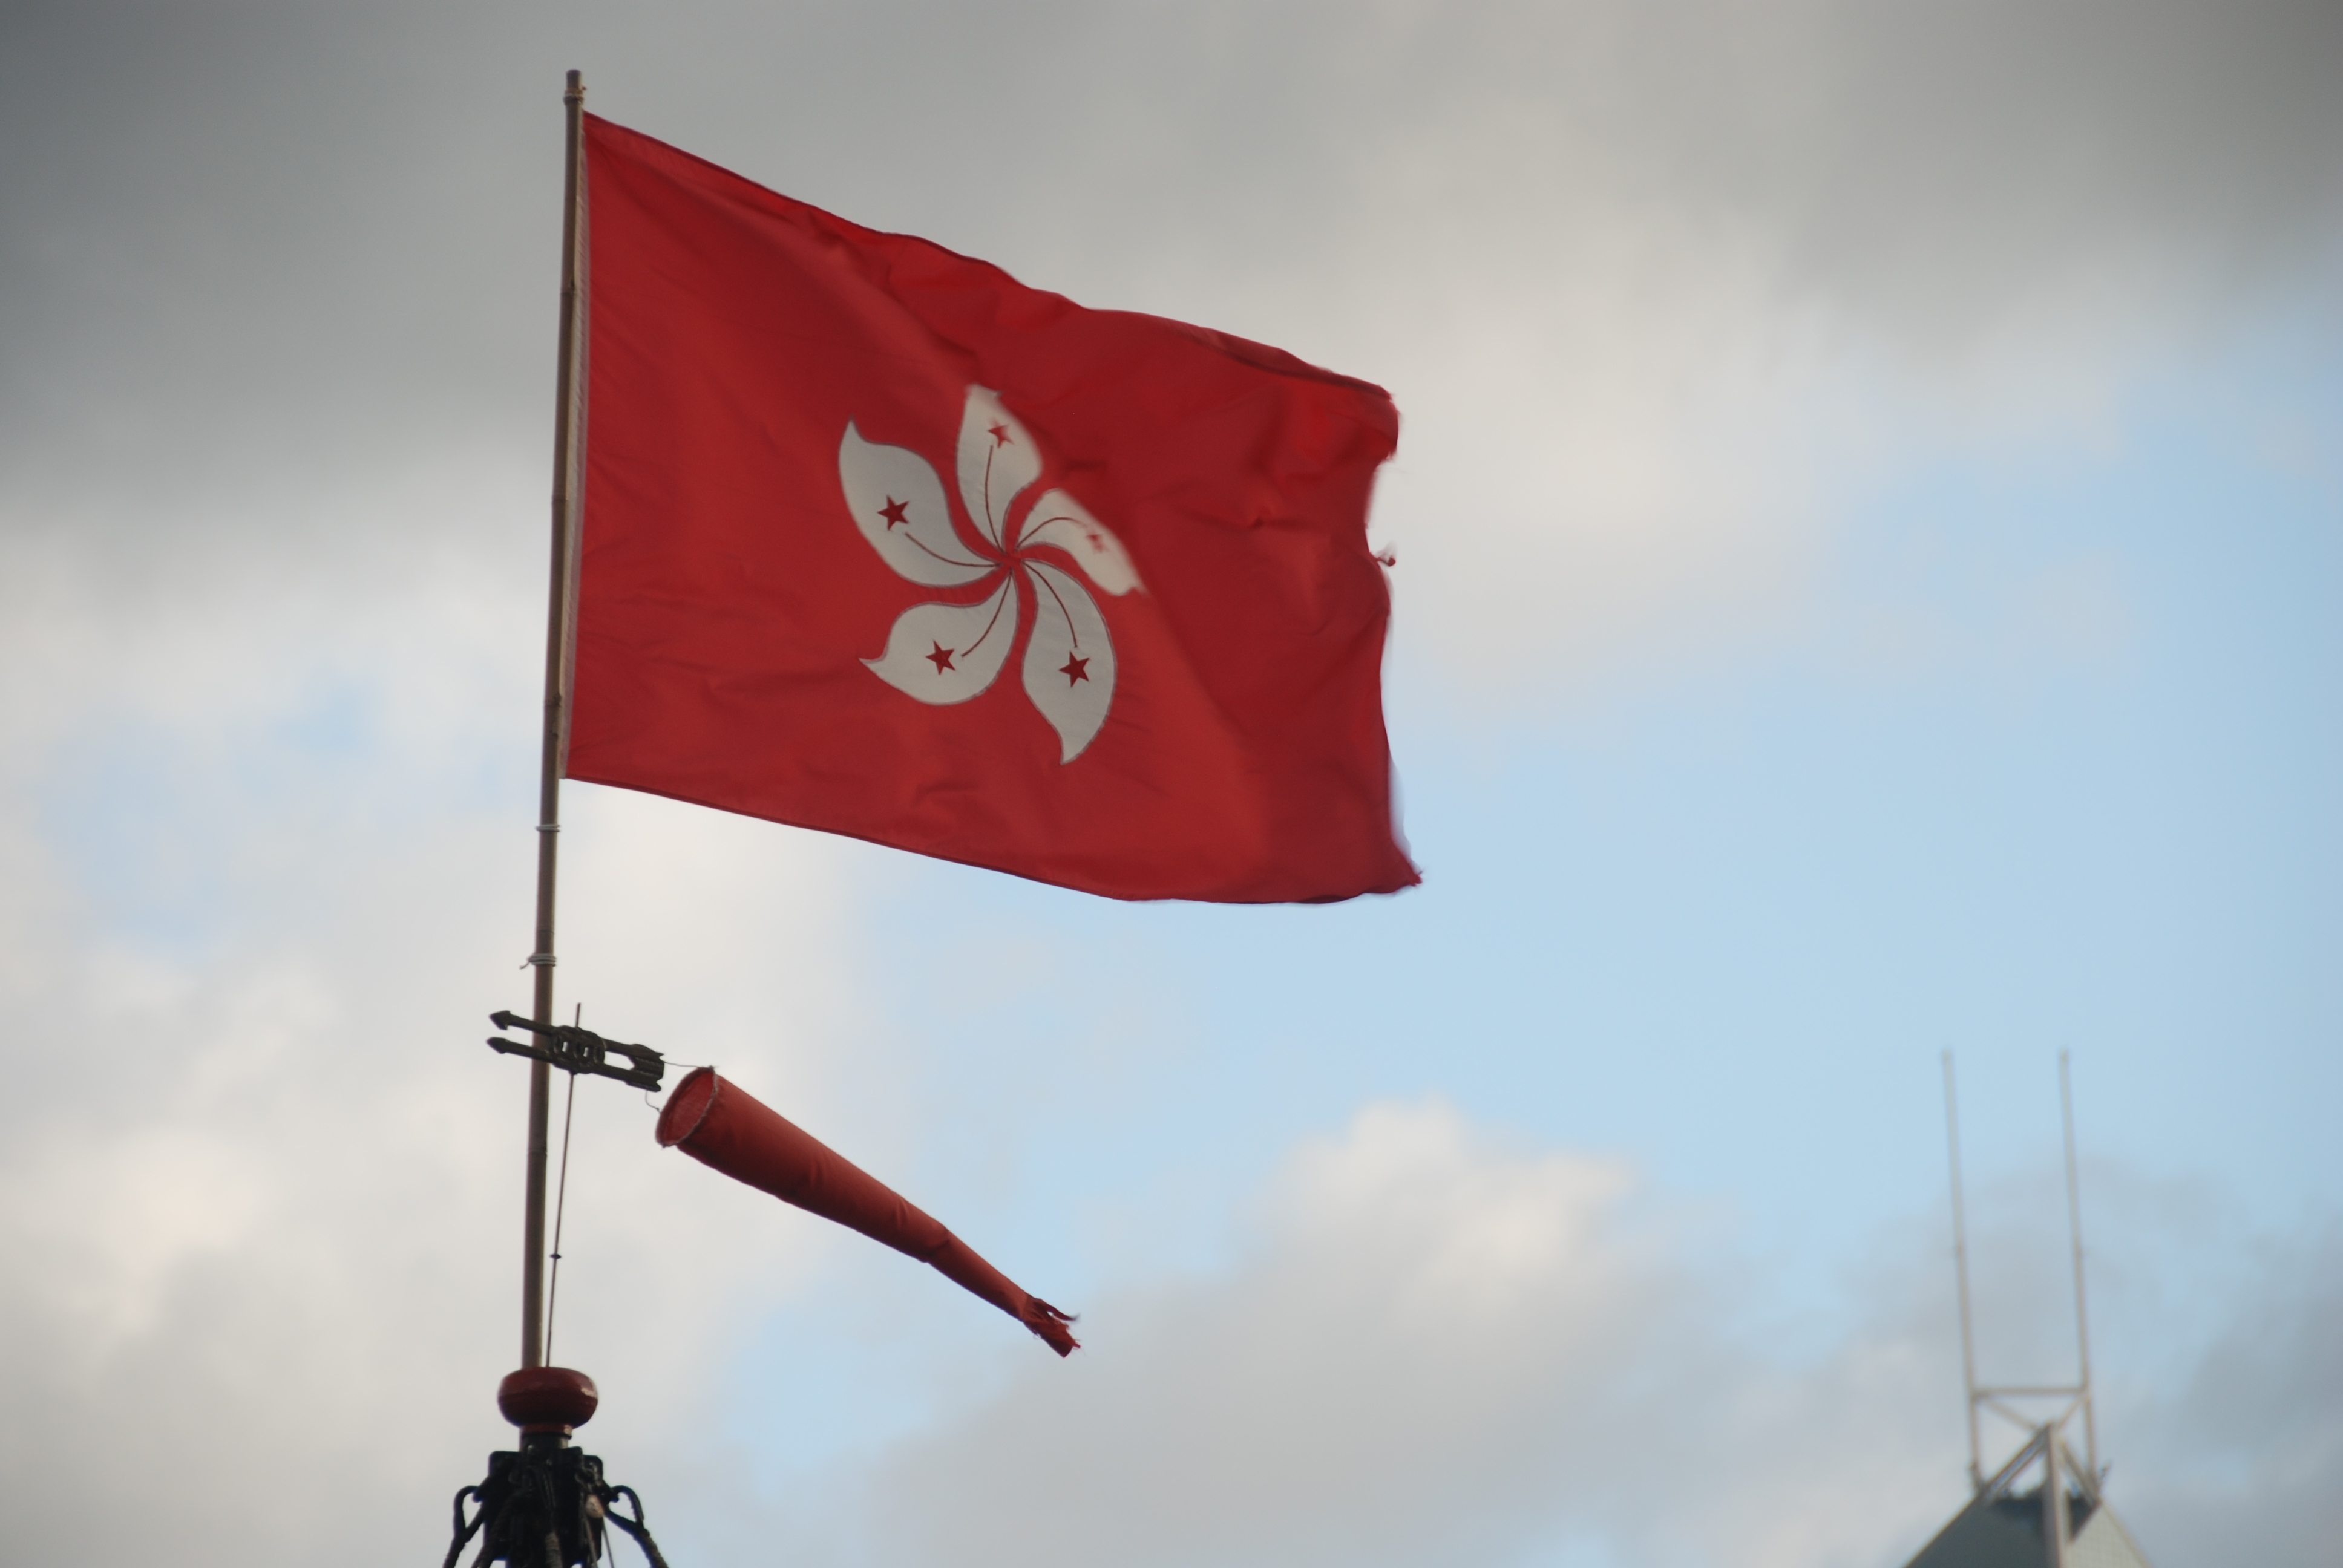 Hong Kong pro-democracy lawmakers to resign as Beijing moves to quash opposition